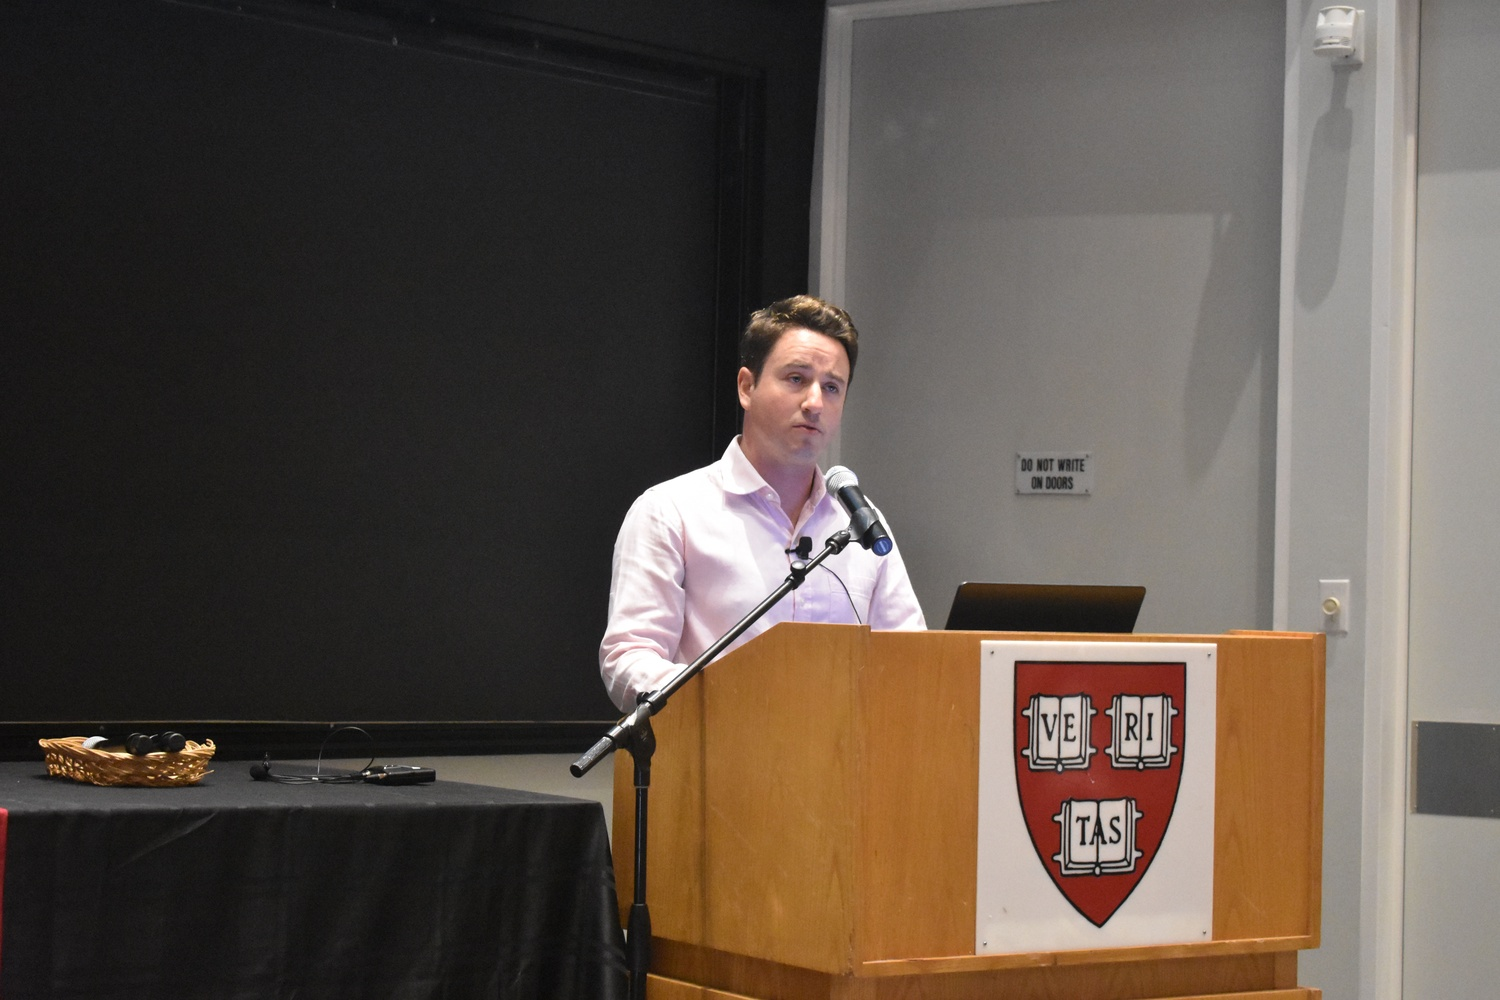 Gabriel Zucman, an Assistant Professor at UC Berkeley, speaks about globalization, taxes, and inequality in Science Center Hall D Wednesday afternoon.